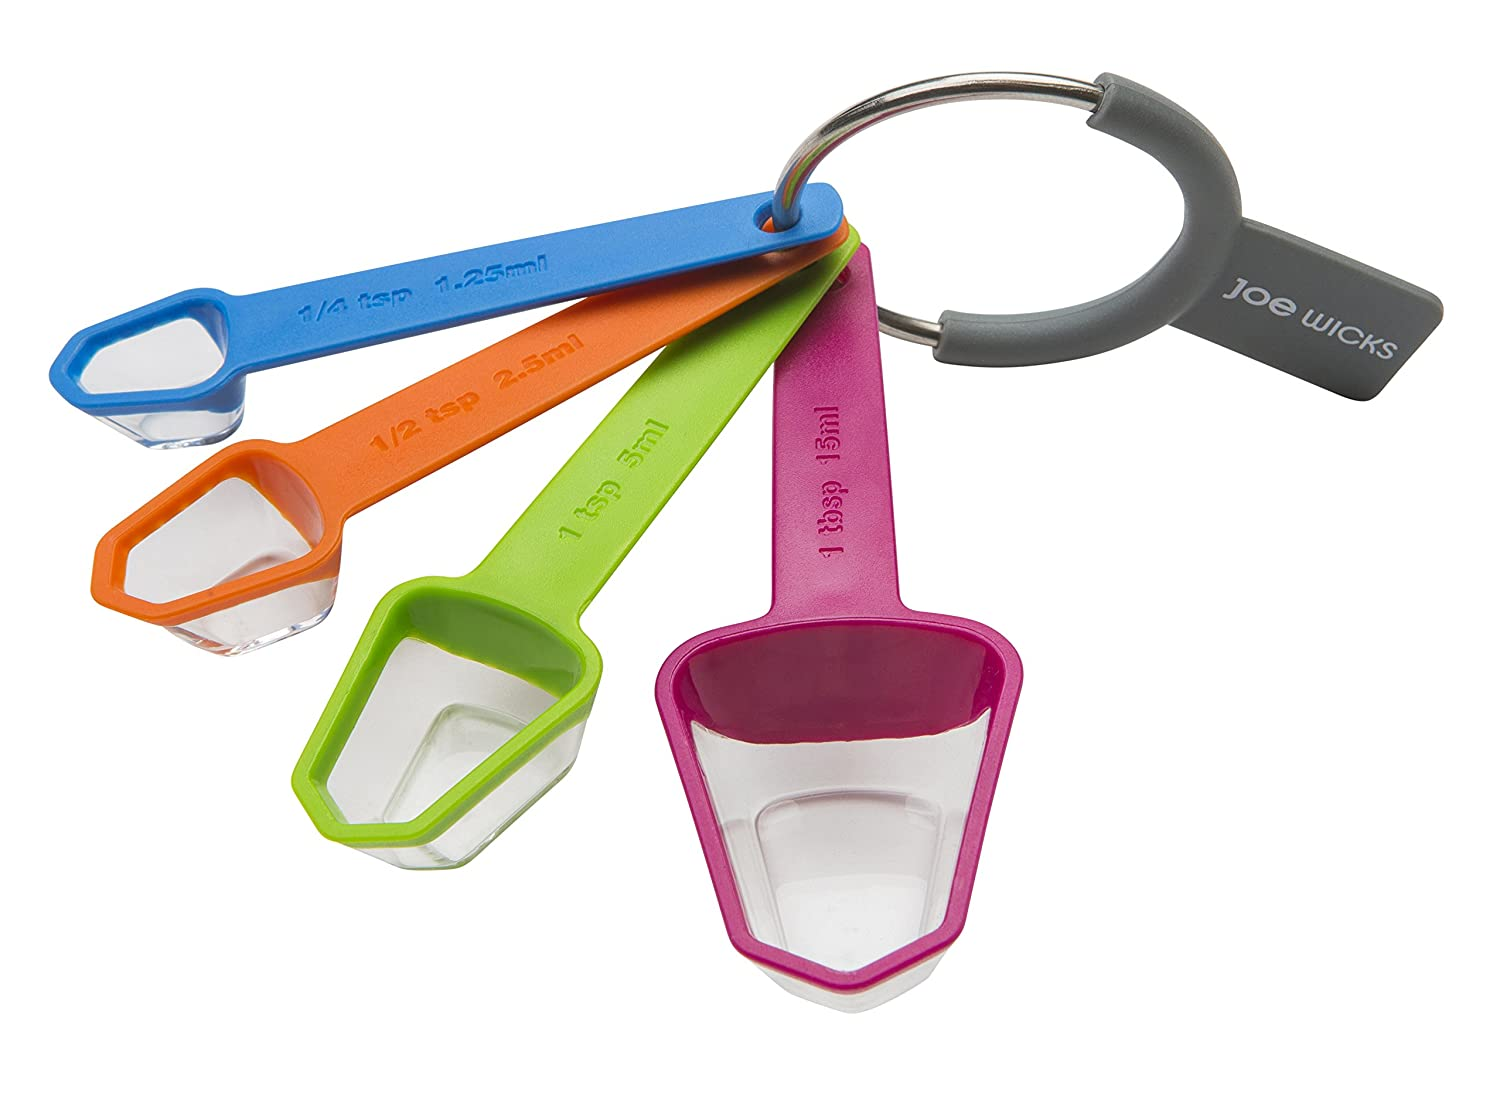 Joe Wicks Food Prep gadgets - 4 piece measuring spoons Meyer Group Ltd 47382